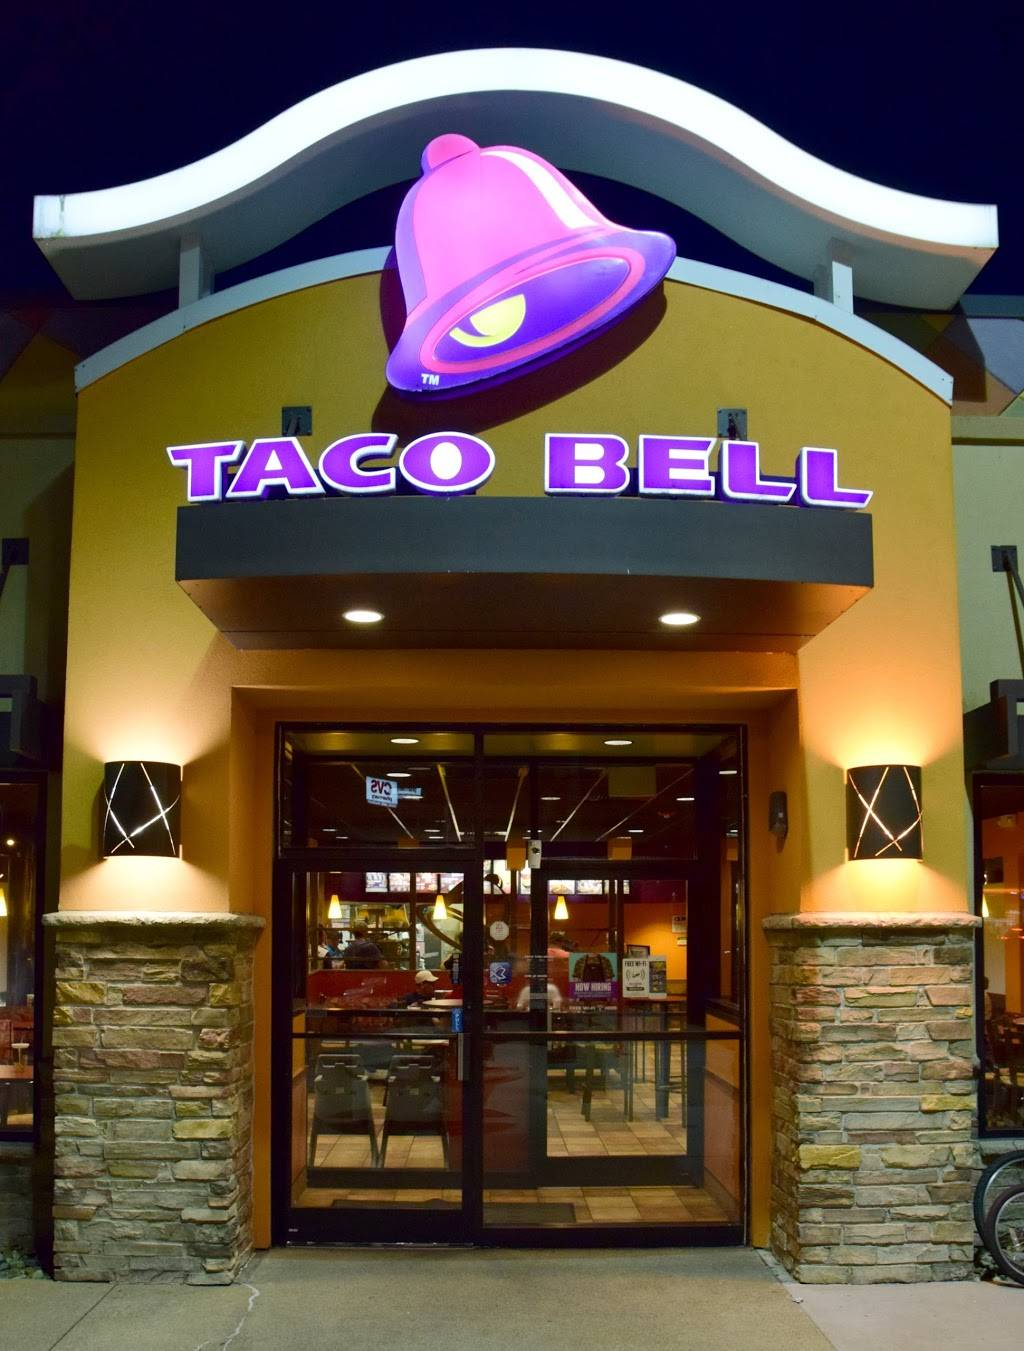 Taco Bell - Meal takeaway  5 Mariano Bishop Blvd, Fall River